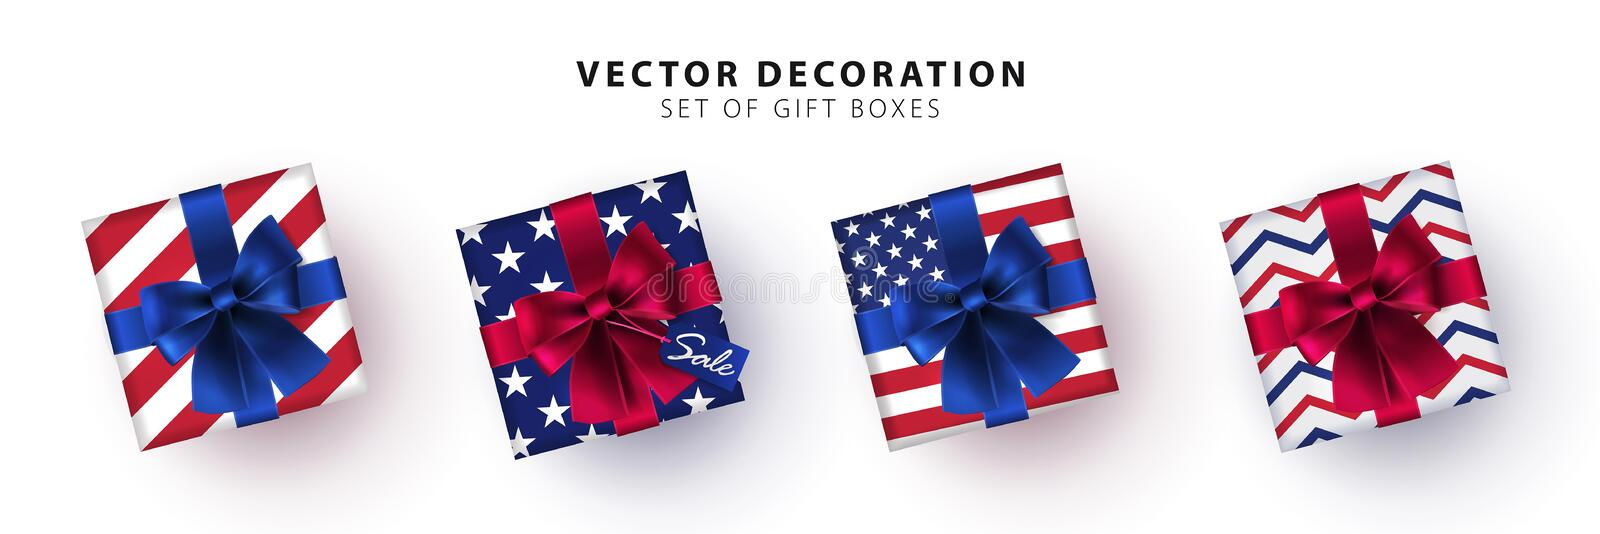 Set of gift boxes in the colors of the USA flag isolated on white background. Collection of realistic gift presents view top vector illustration